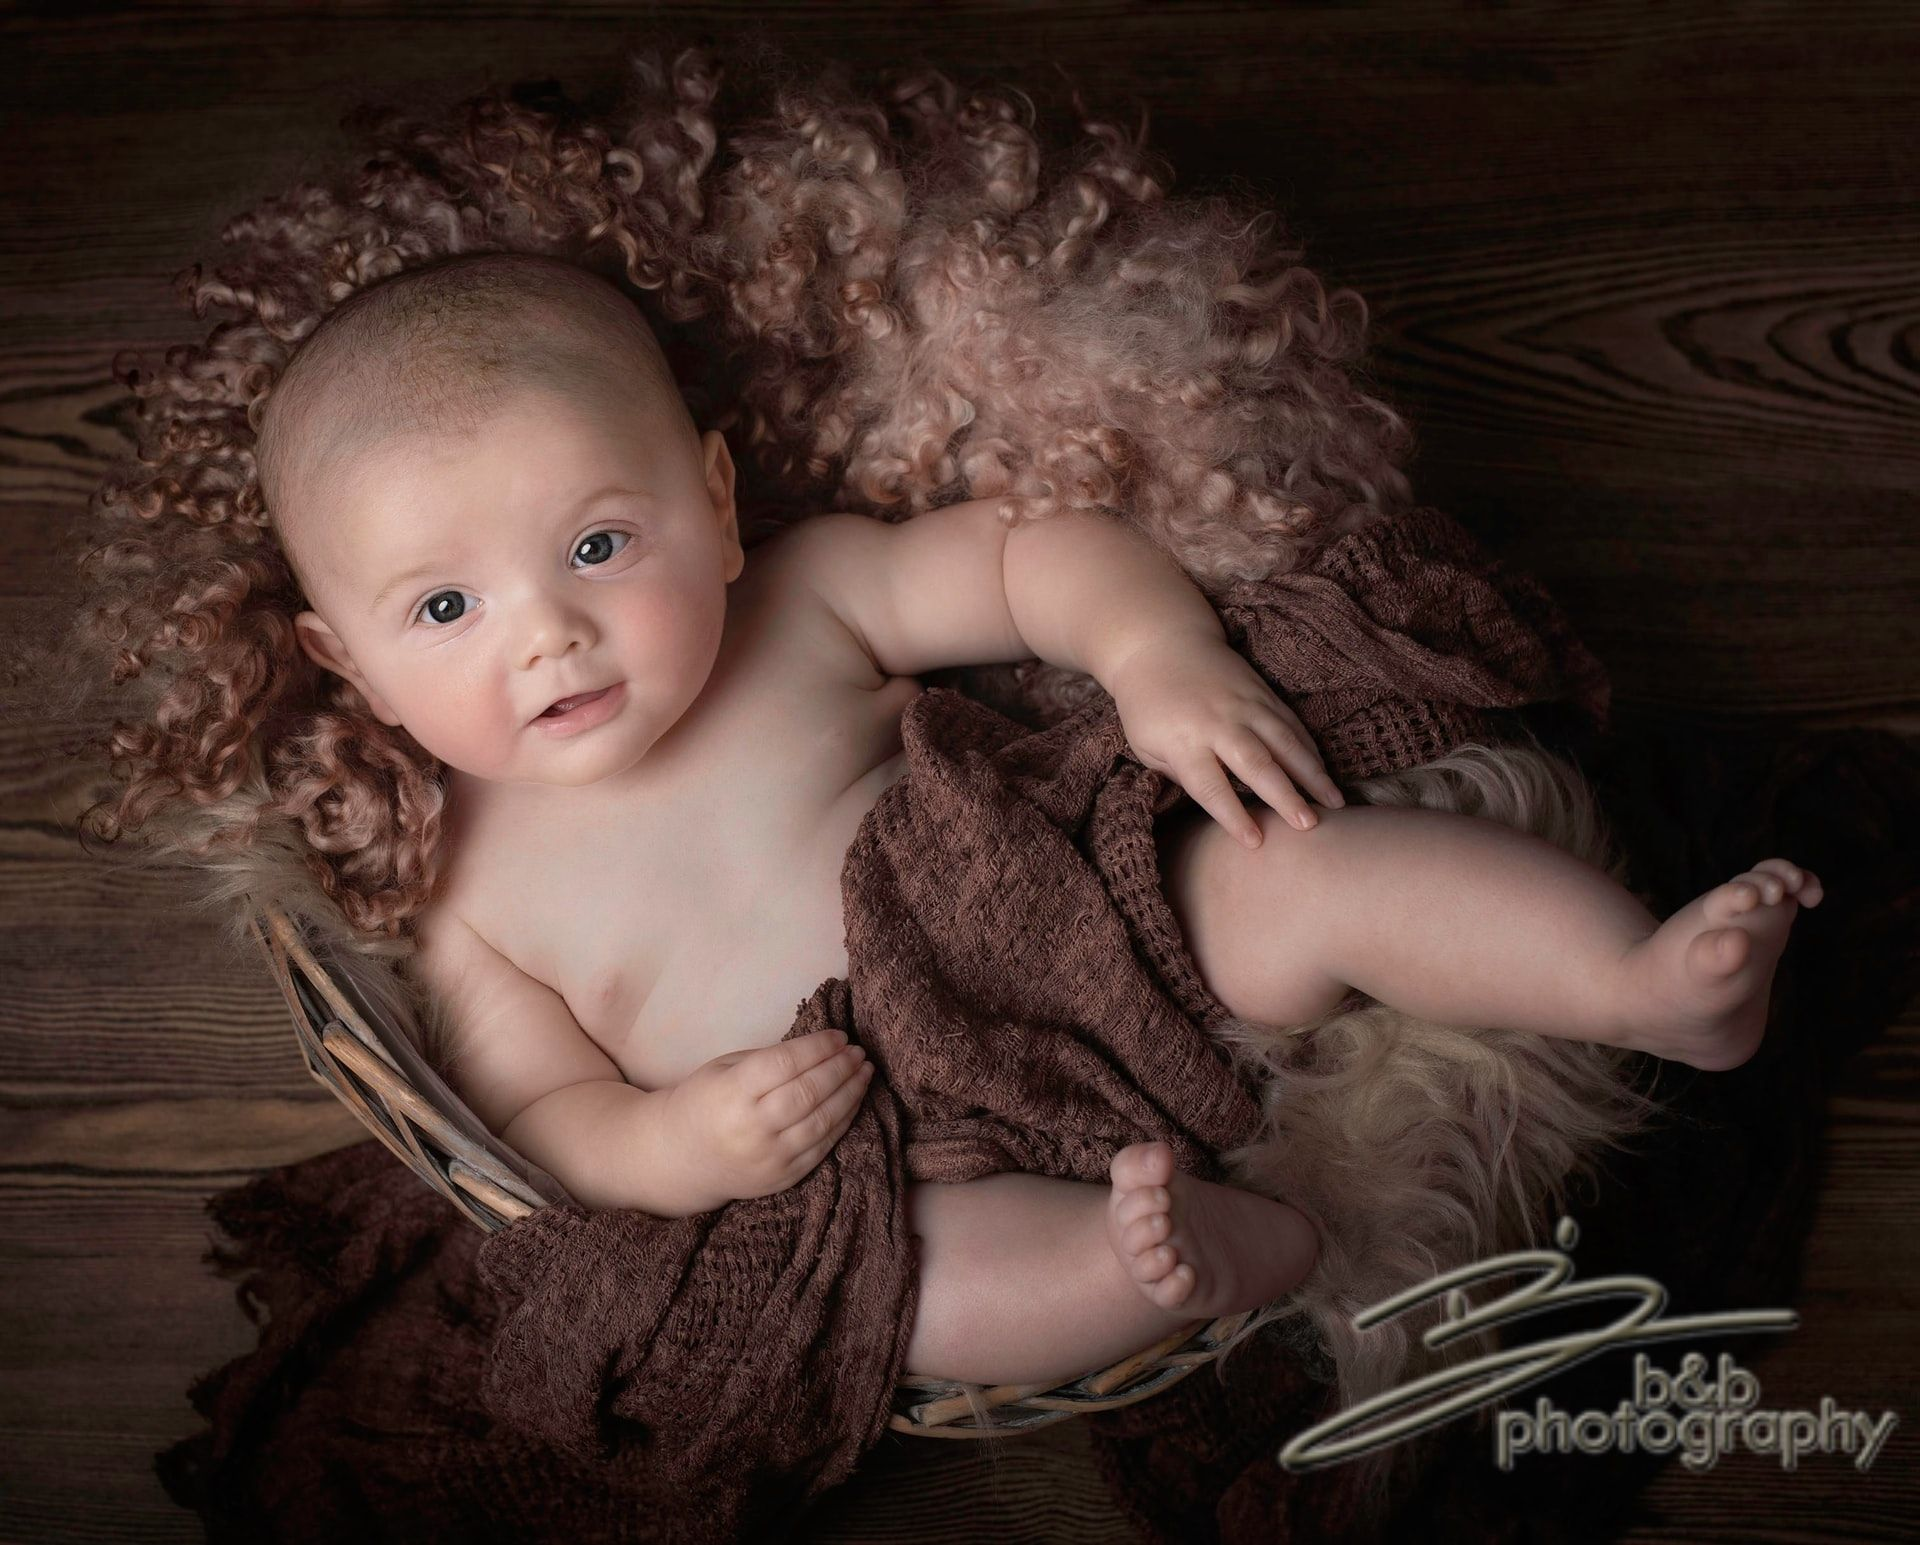 Baby in a basket with a brown blanket